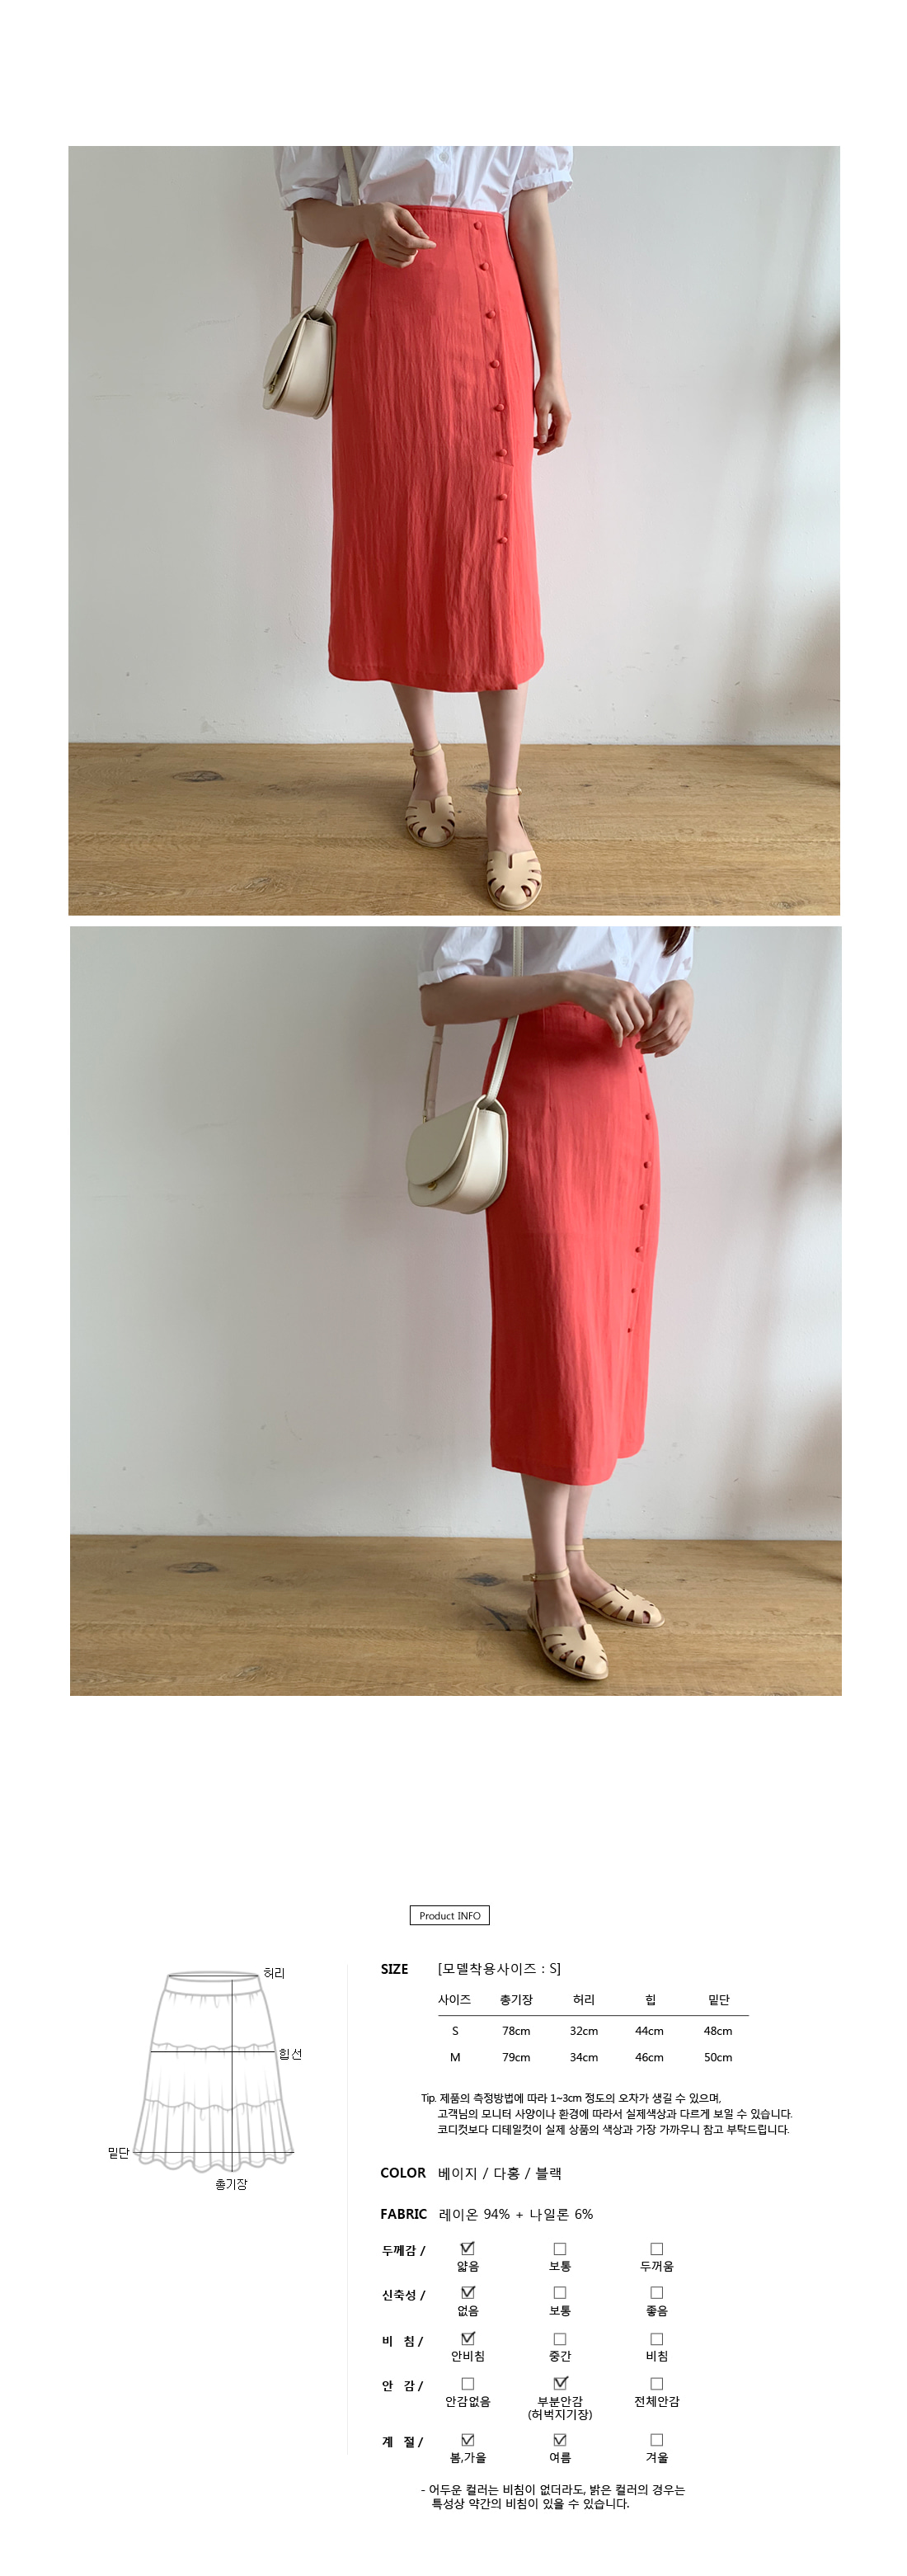 Accor button long skirt-beige small size